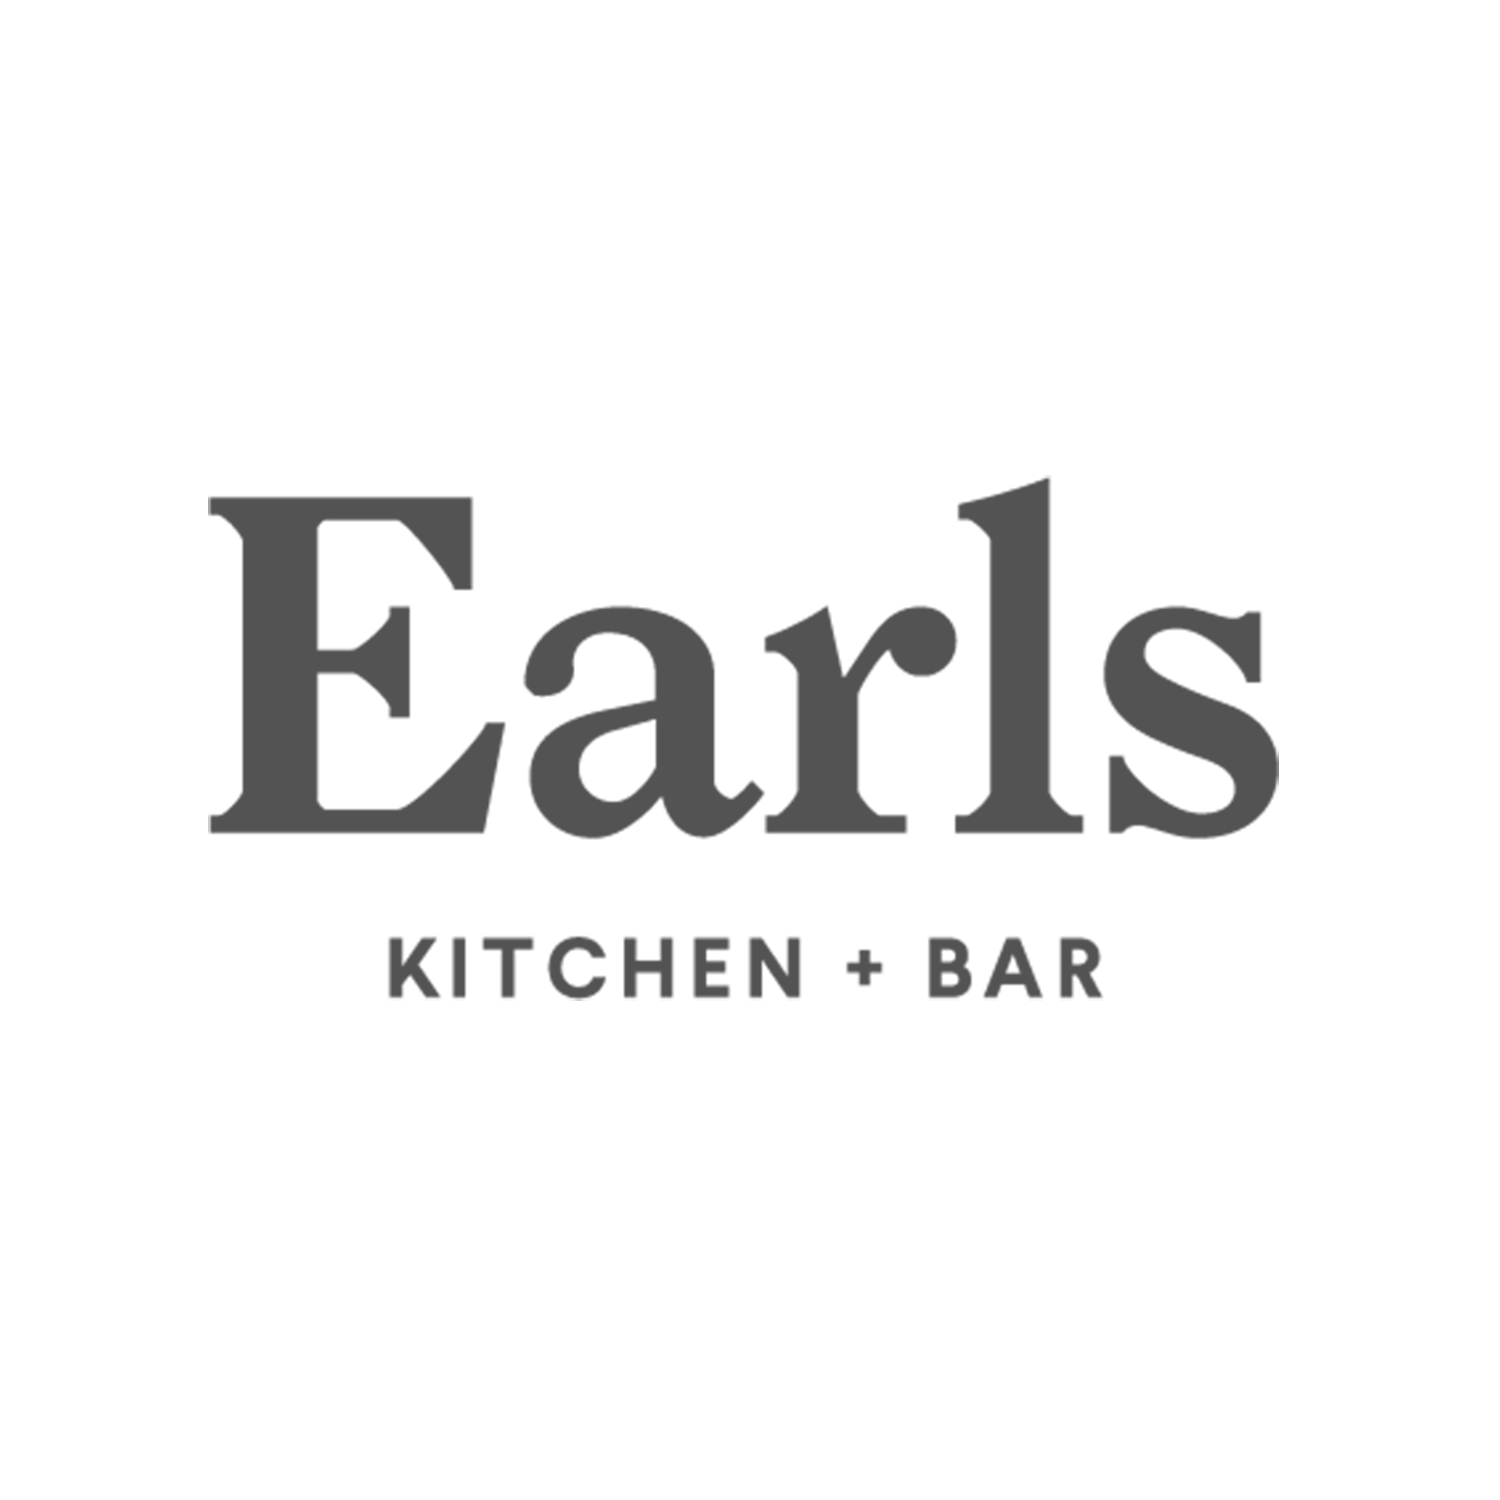 earls_logo